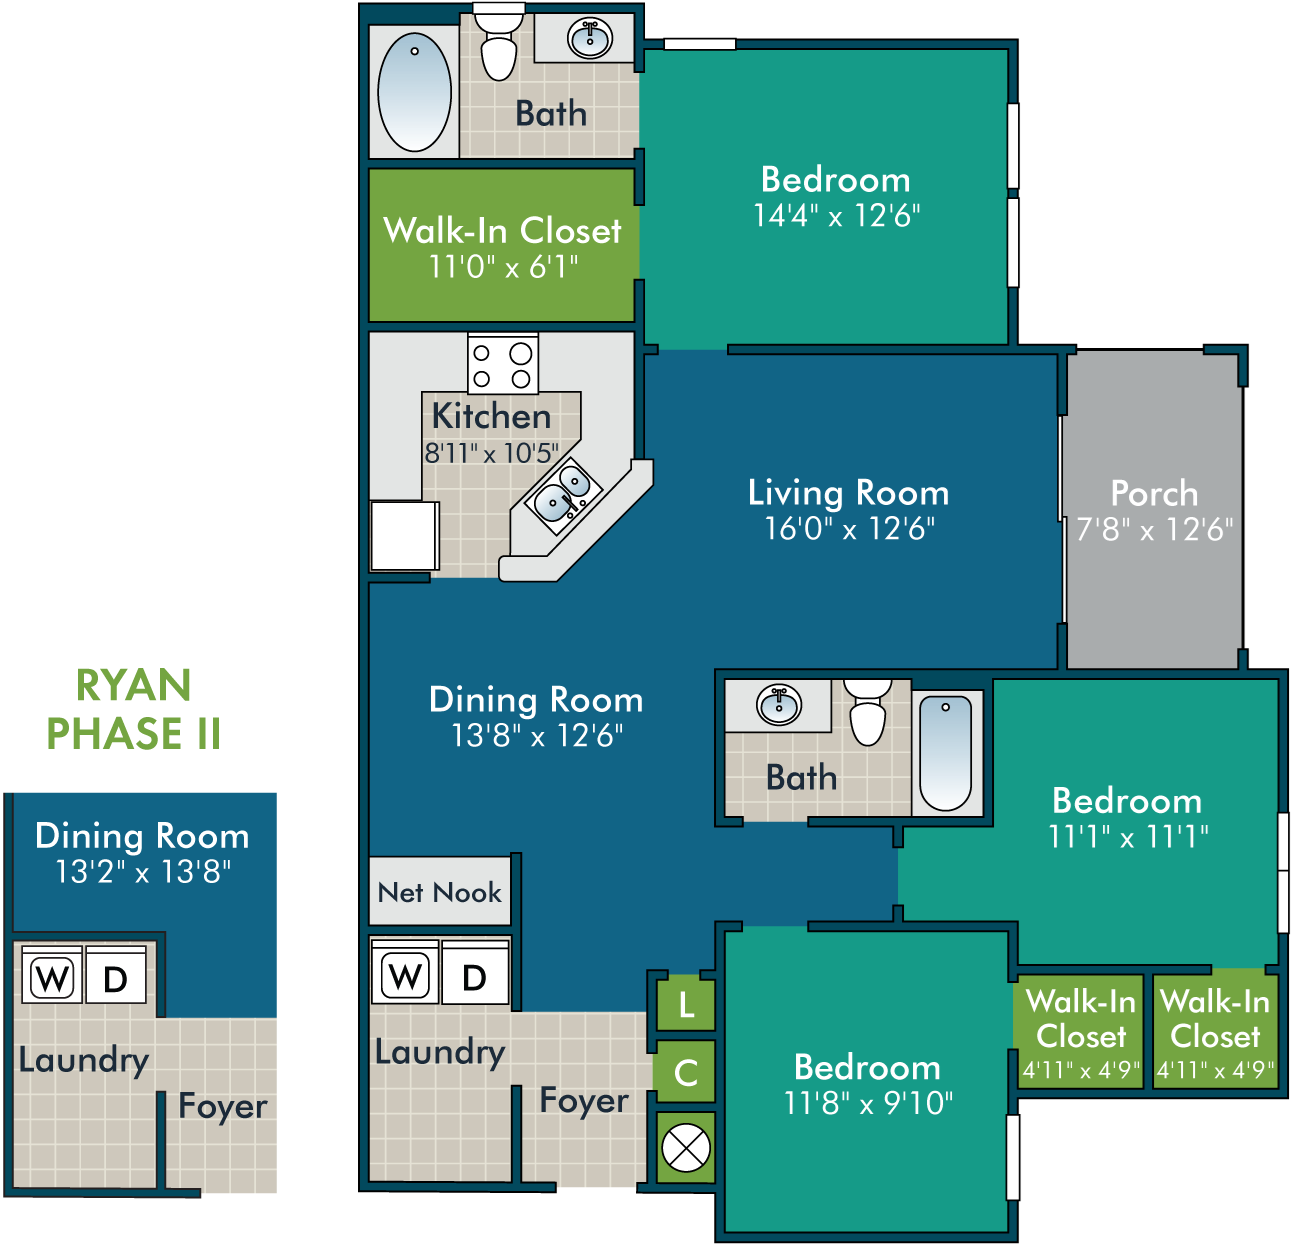 Ryan_3BR2BA Floor Plan at Abberly Green Apartment Homes by HHHunt, Mooresville